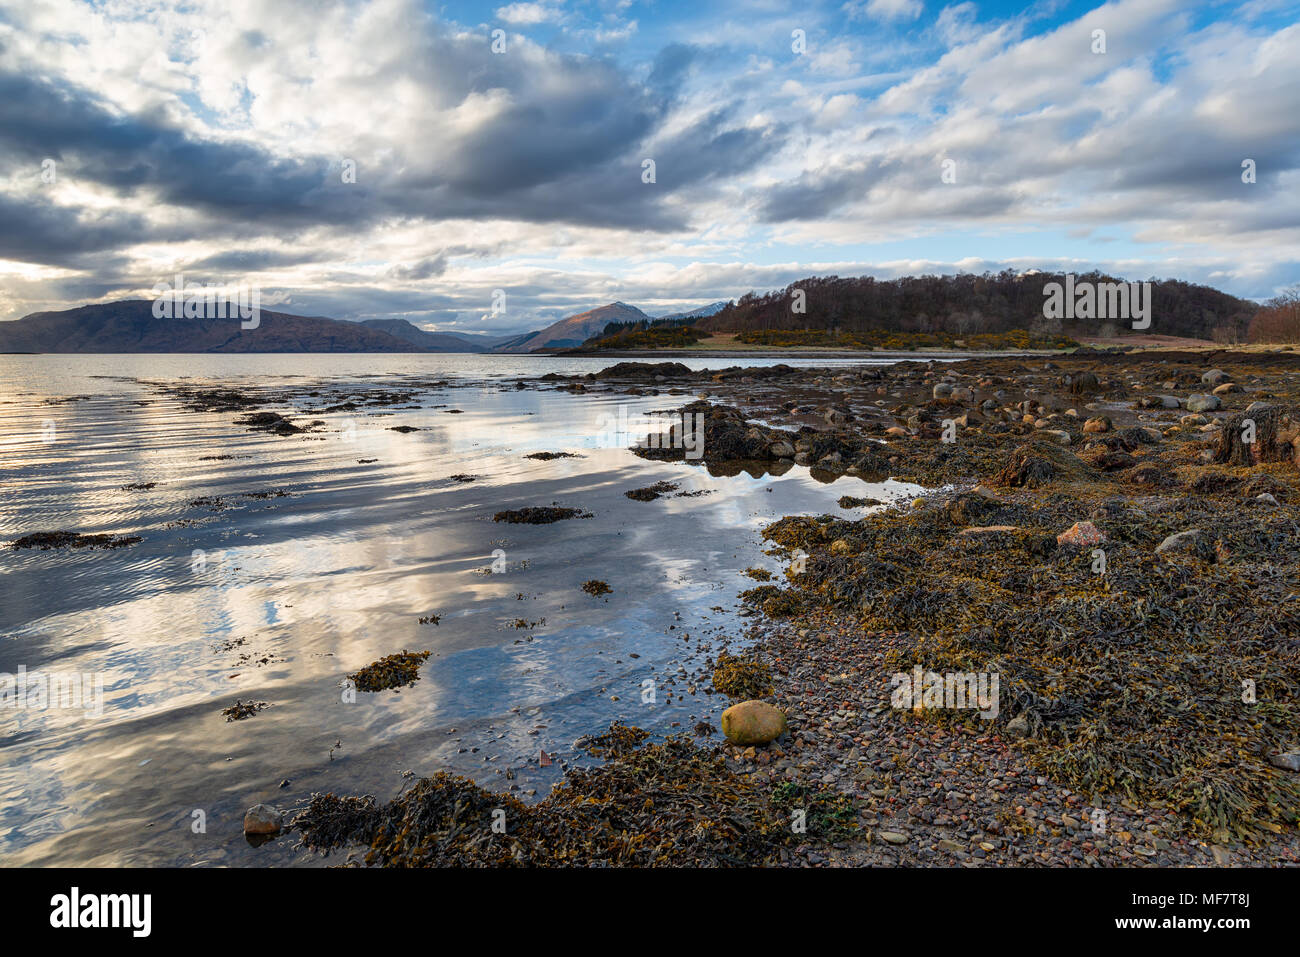 The shores of Loch Linnhe near Appin in Scotland - Stock Image